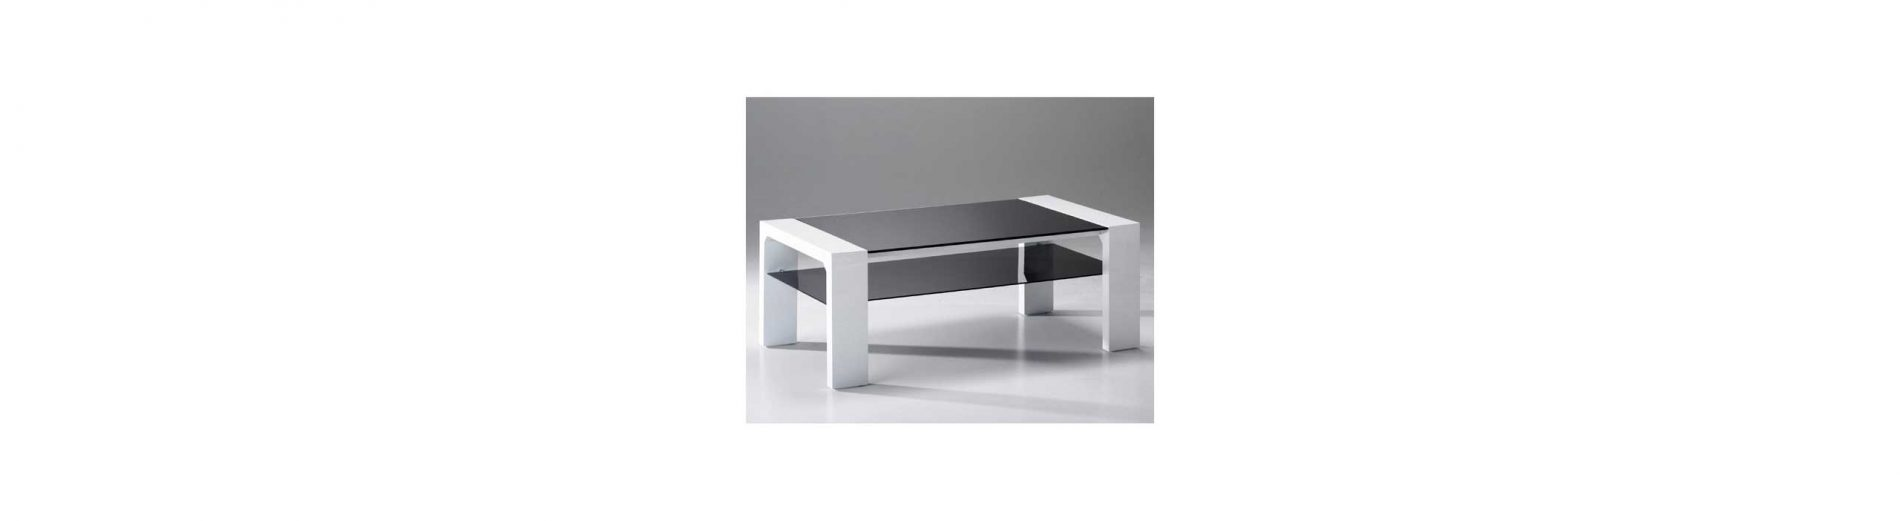 Modern Low Coffee Tables You'll Fall In Love With And Tips To Make The Room Unique